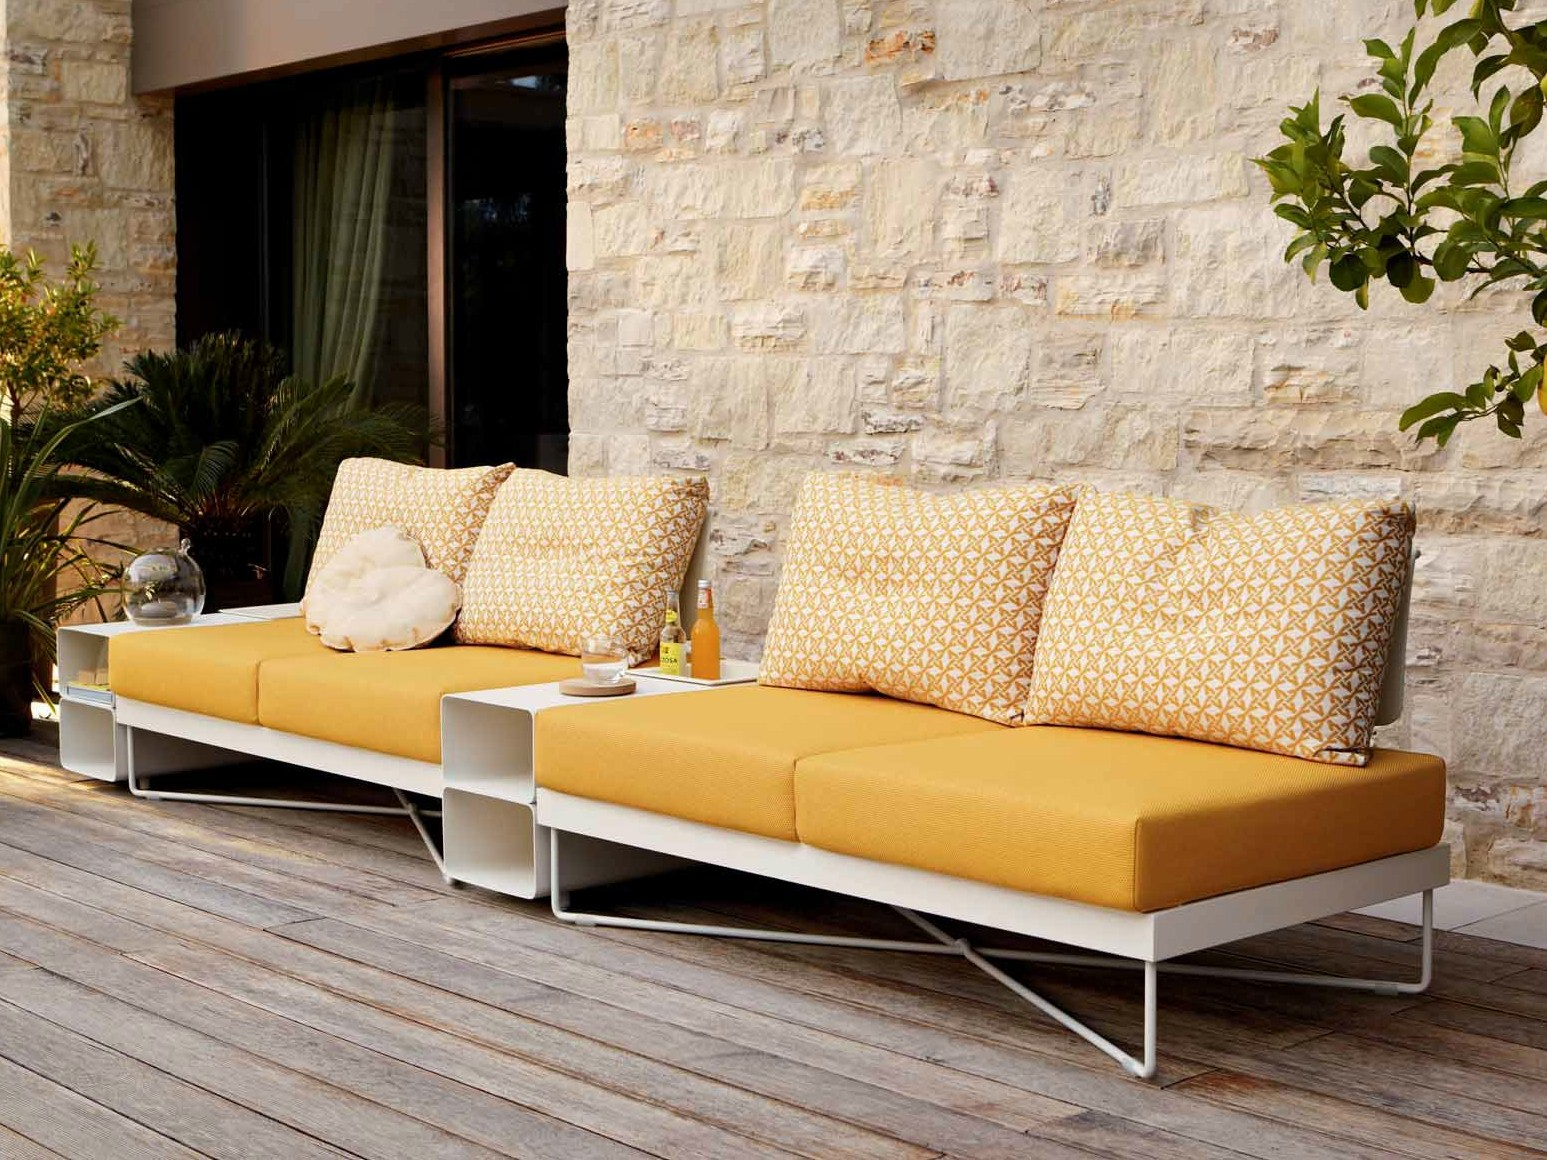 Outdoor Lounge Furniture Trinidad